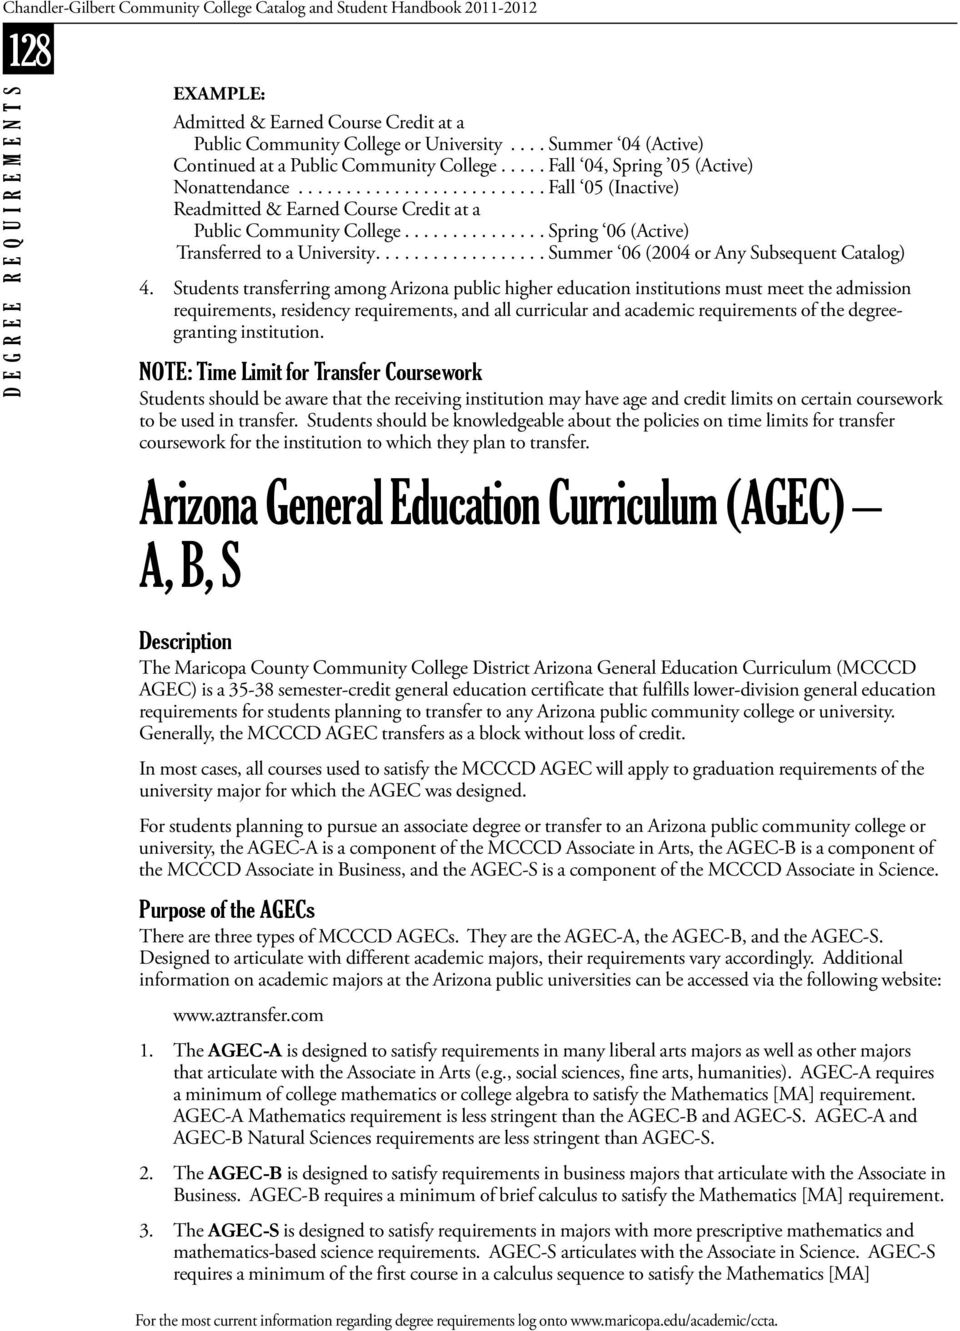 Students transferring among Arizona public higher education institutions must meet the admission requirements, residency requirements, and all curricular and academic requirements of the